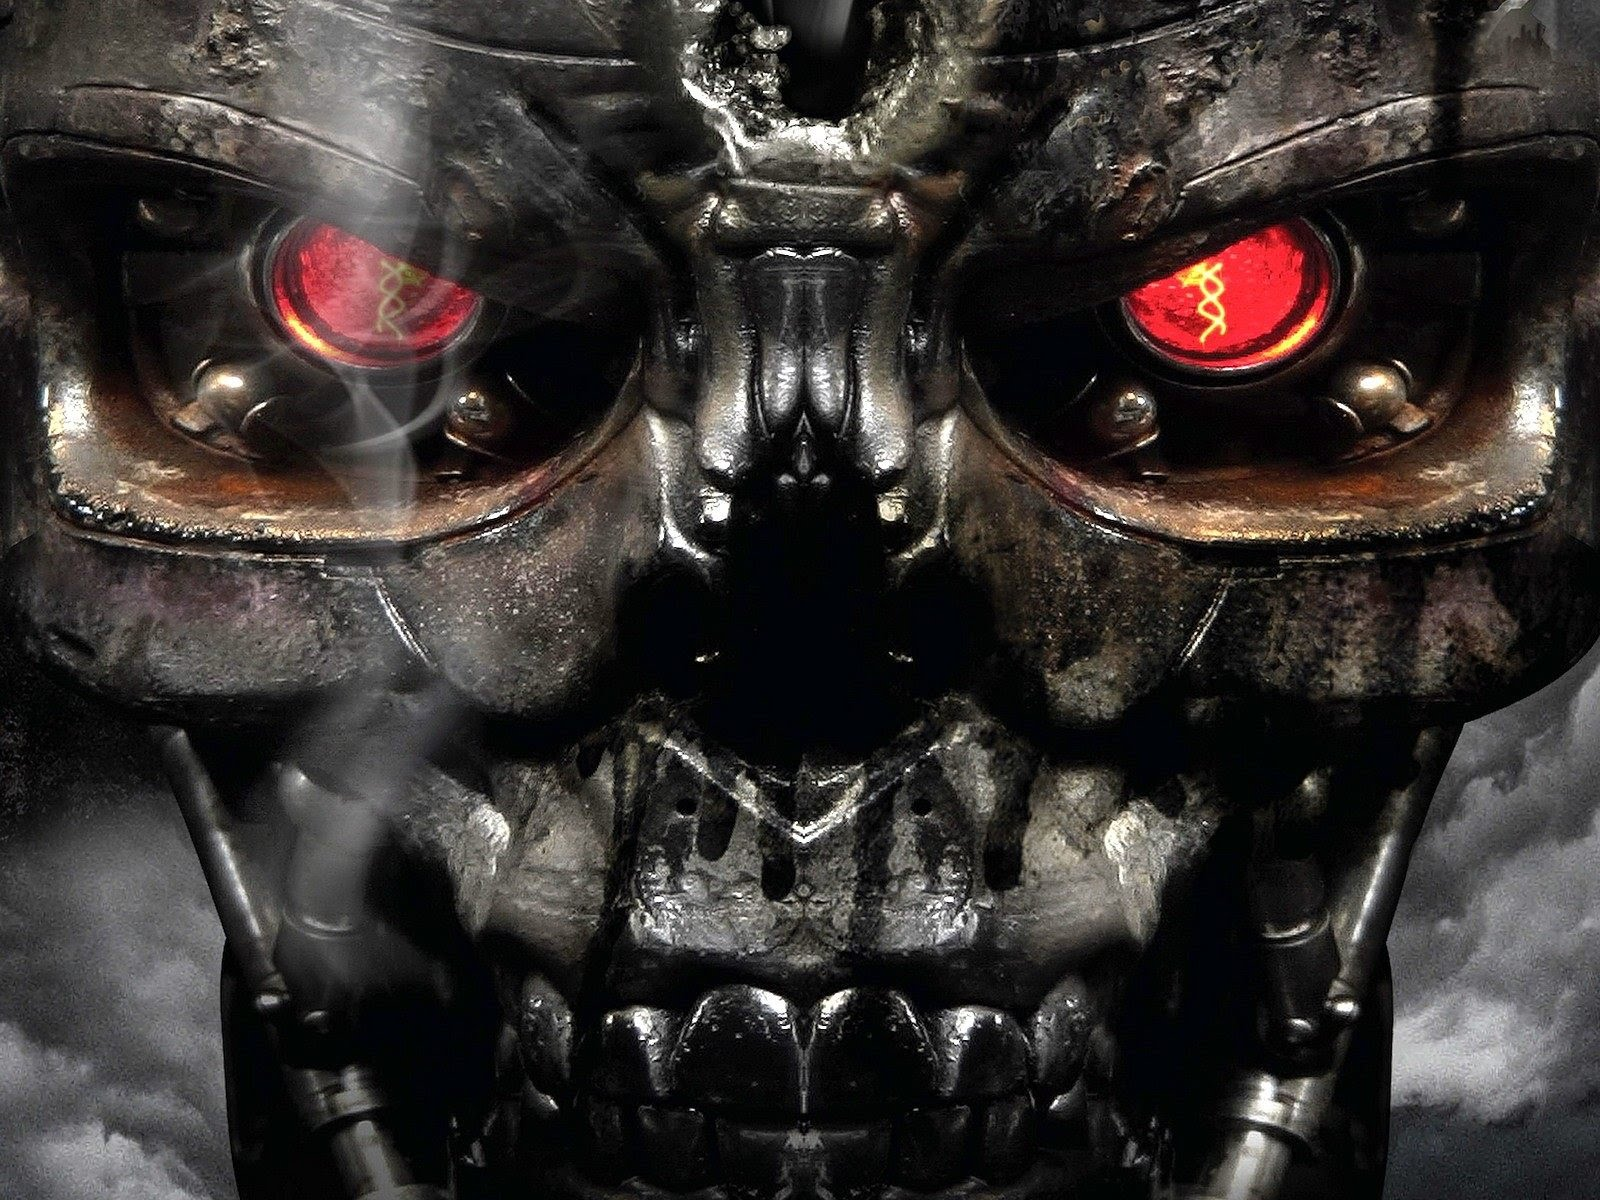 Microsoft CEO Satya Nadella?s advice on how to stop The Terminator from becoming reality